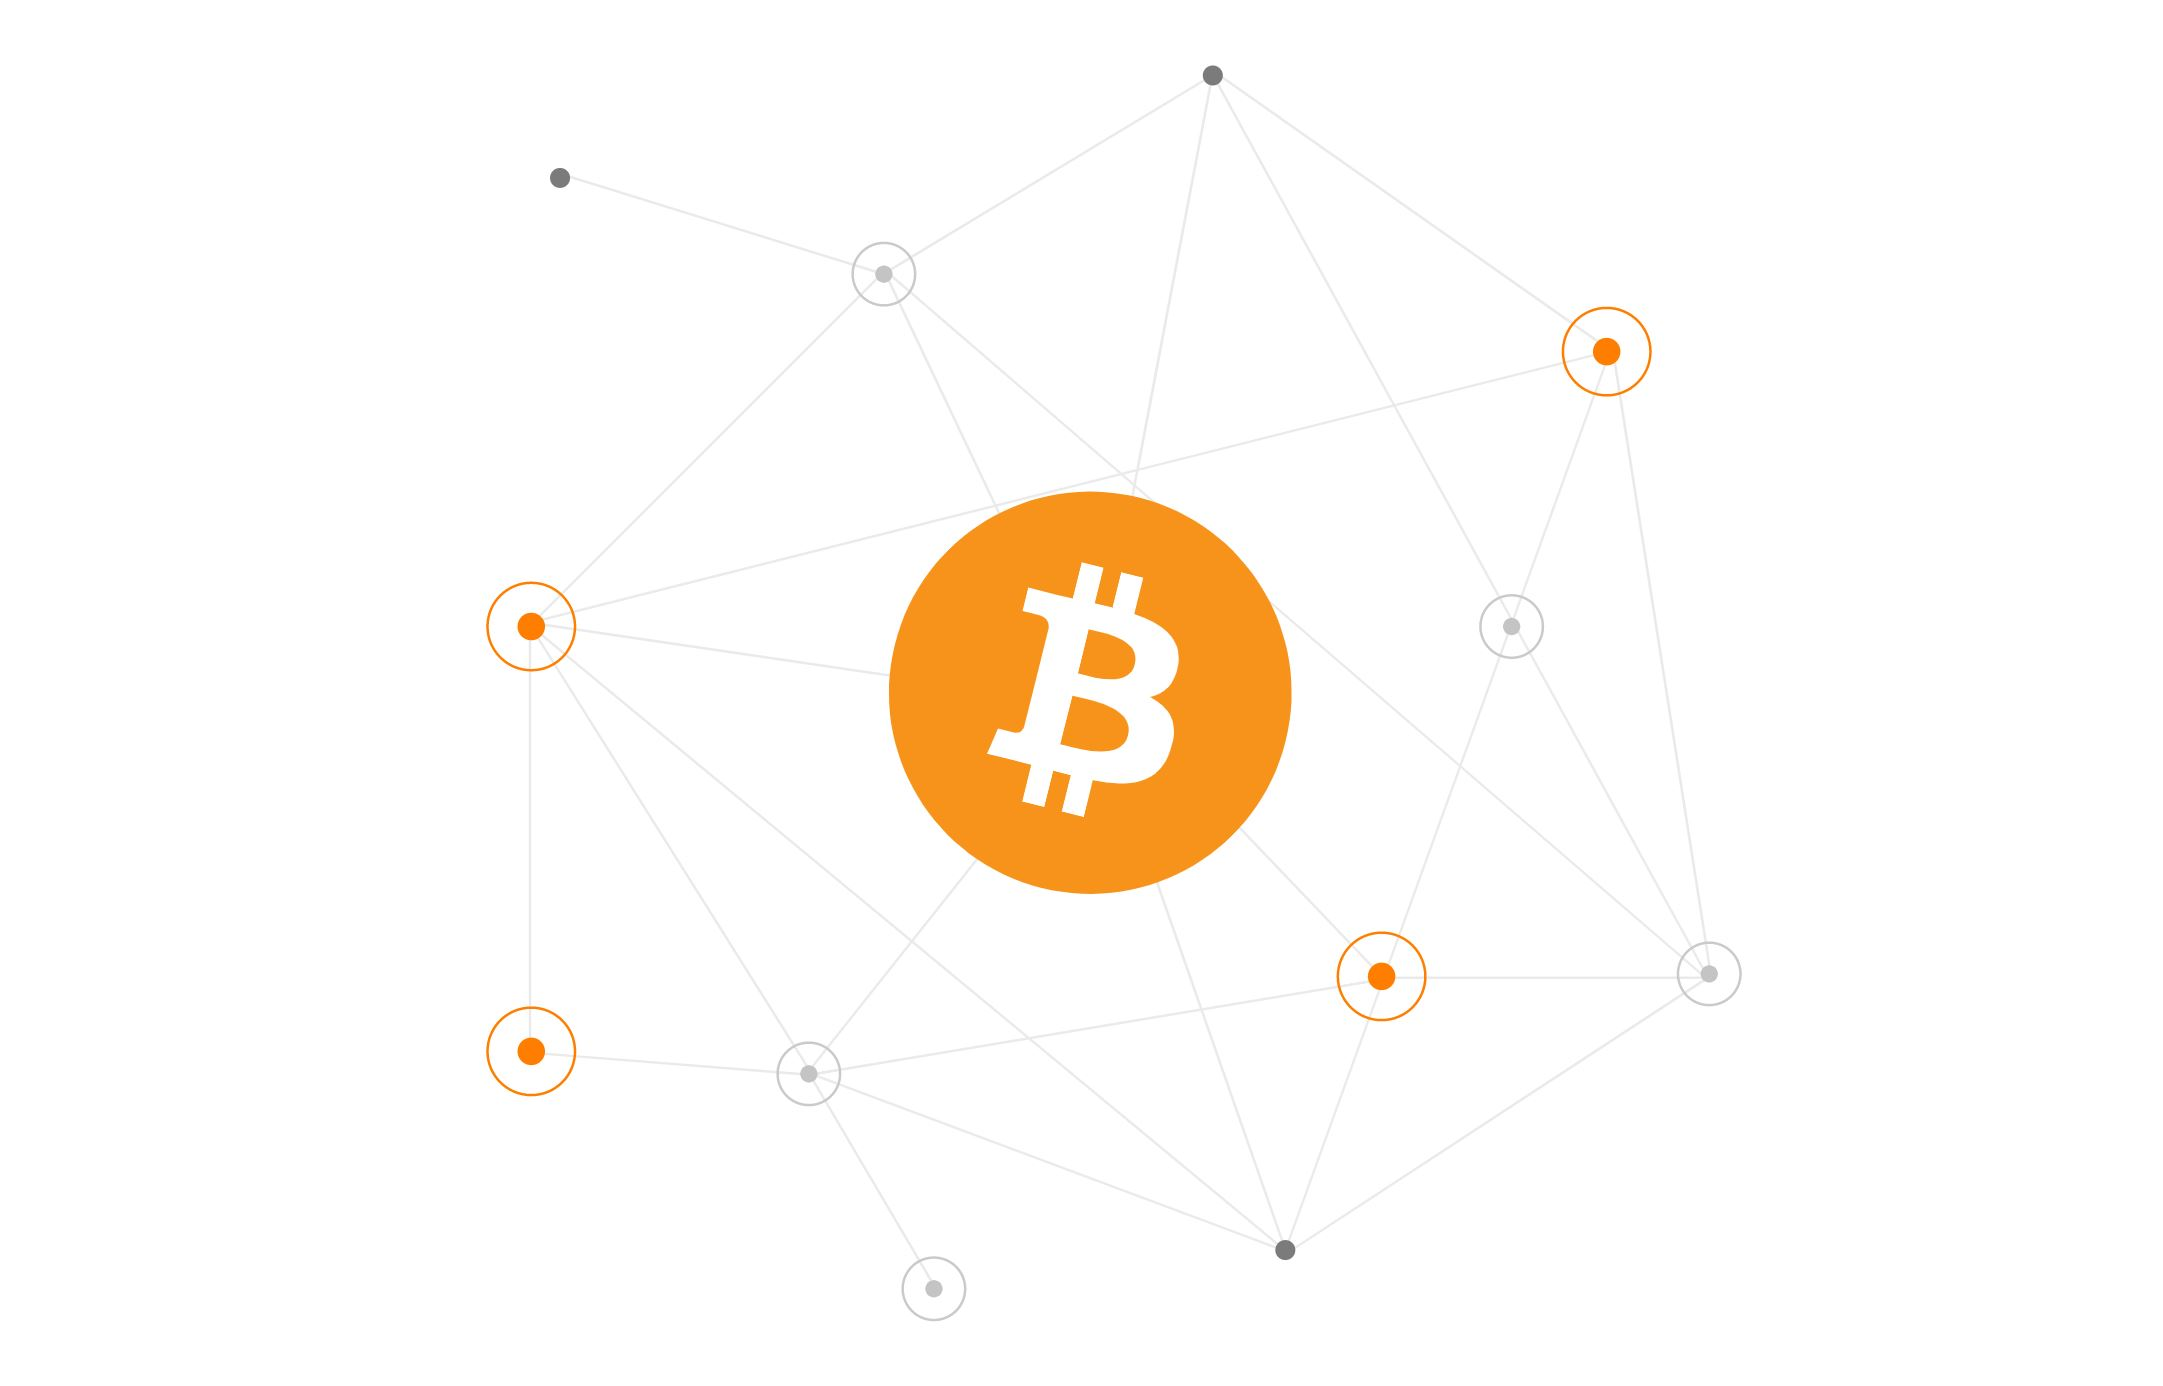 Bitcoin website logo